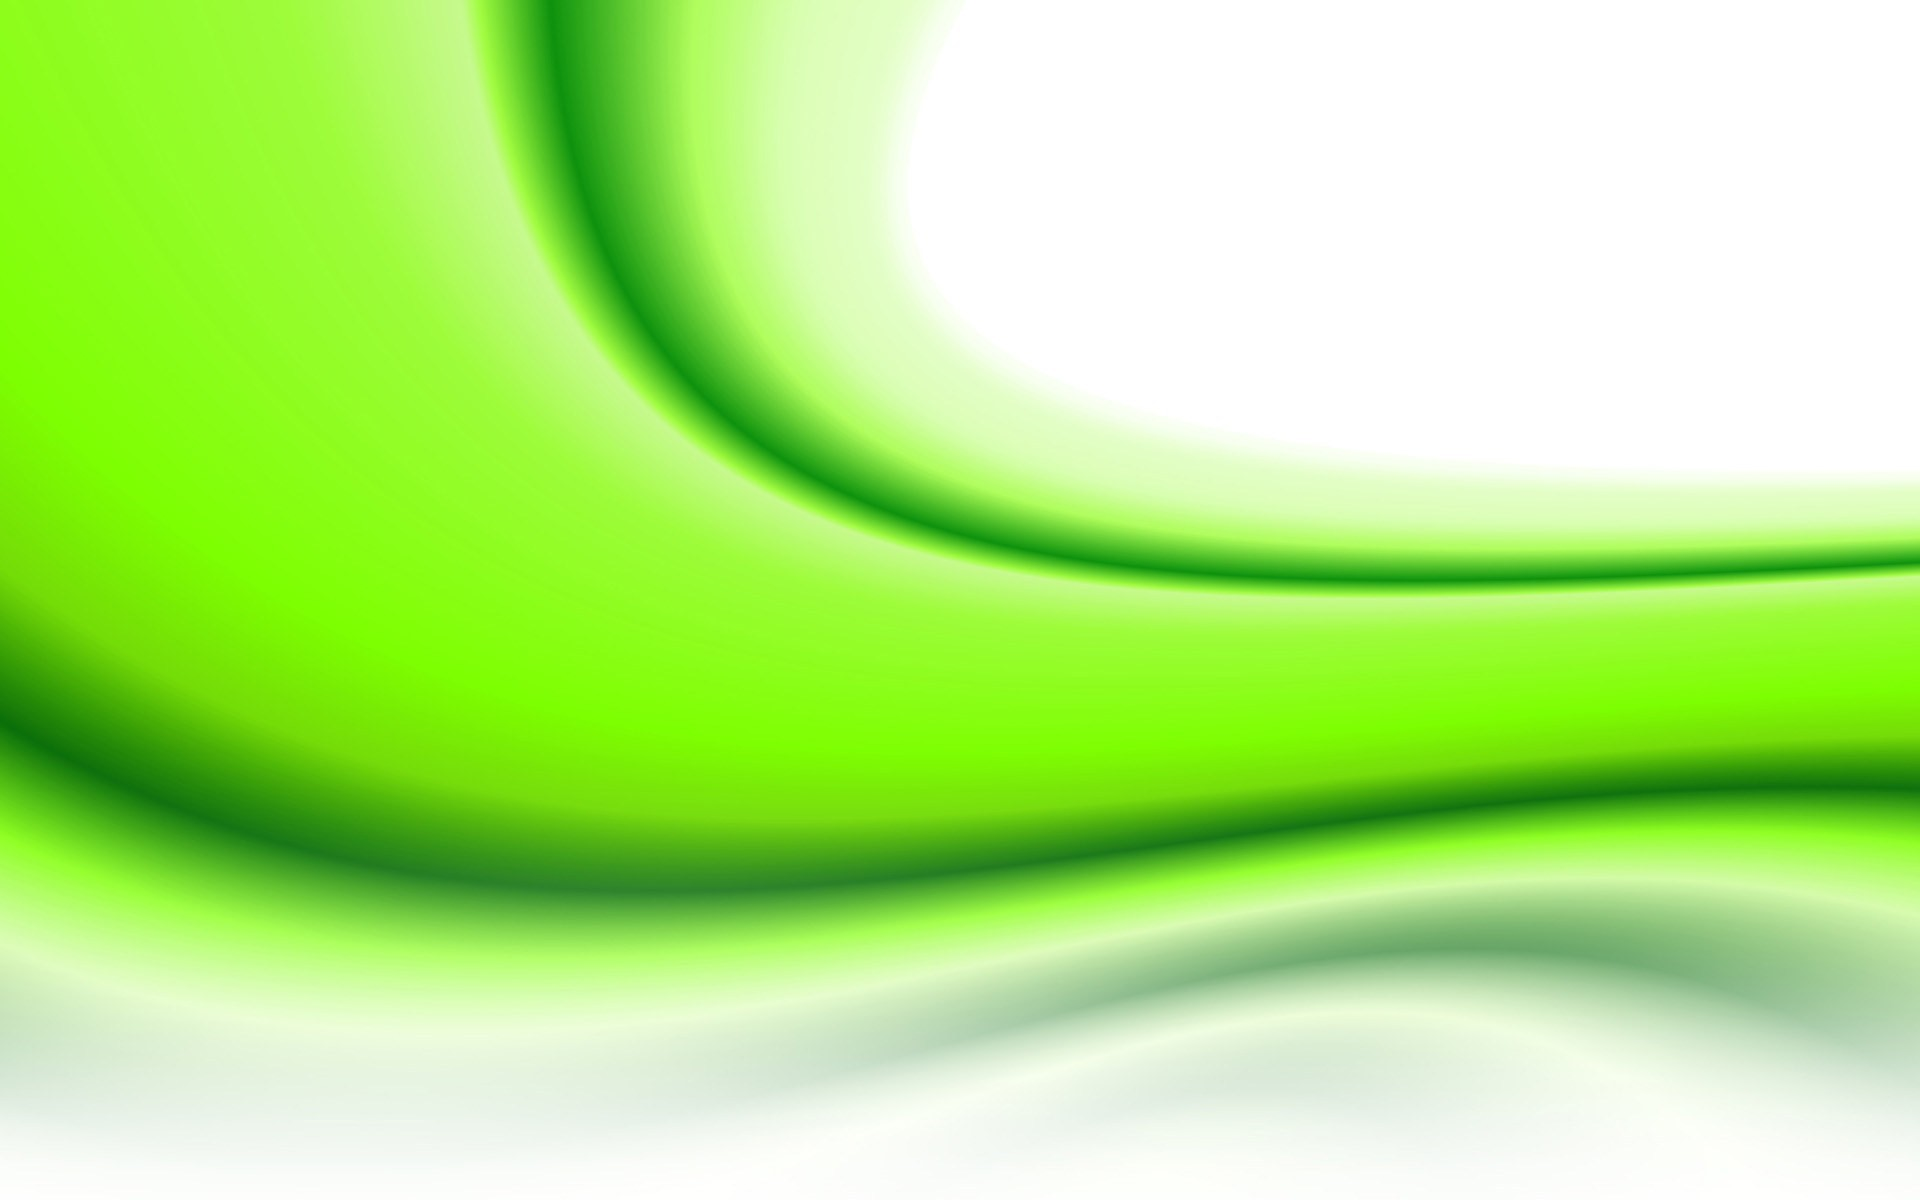 White And Green Abstract Wallpaper